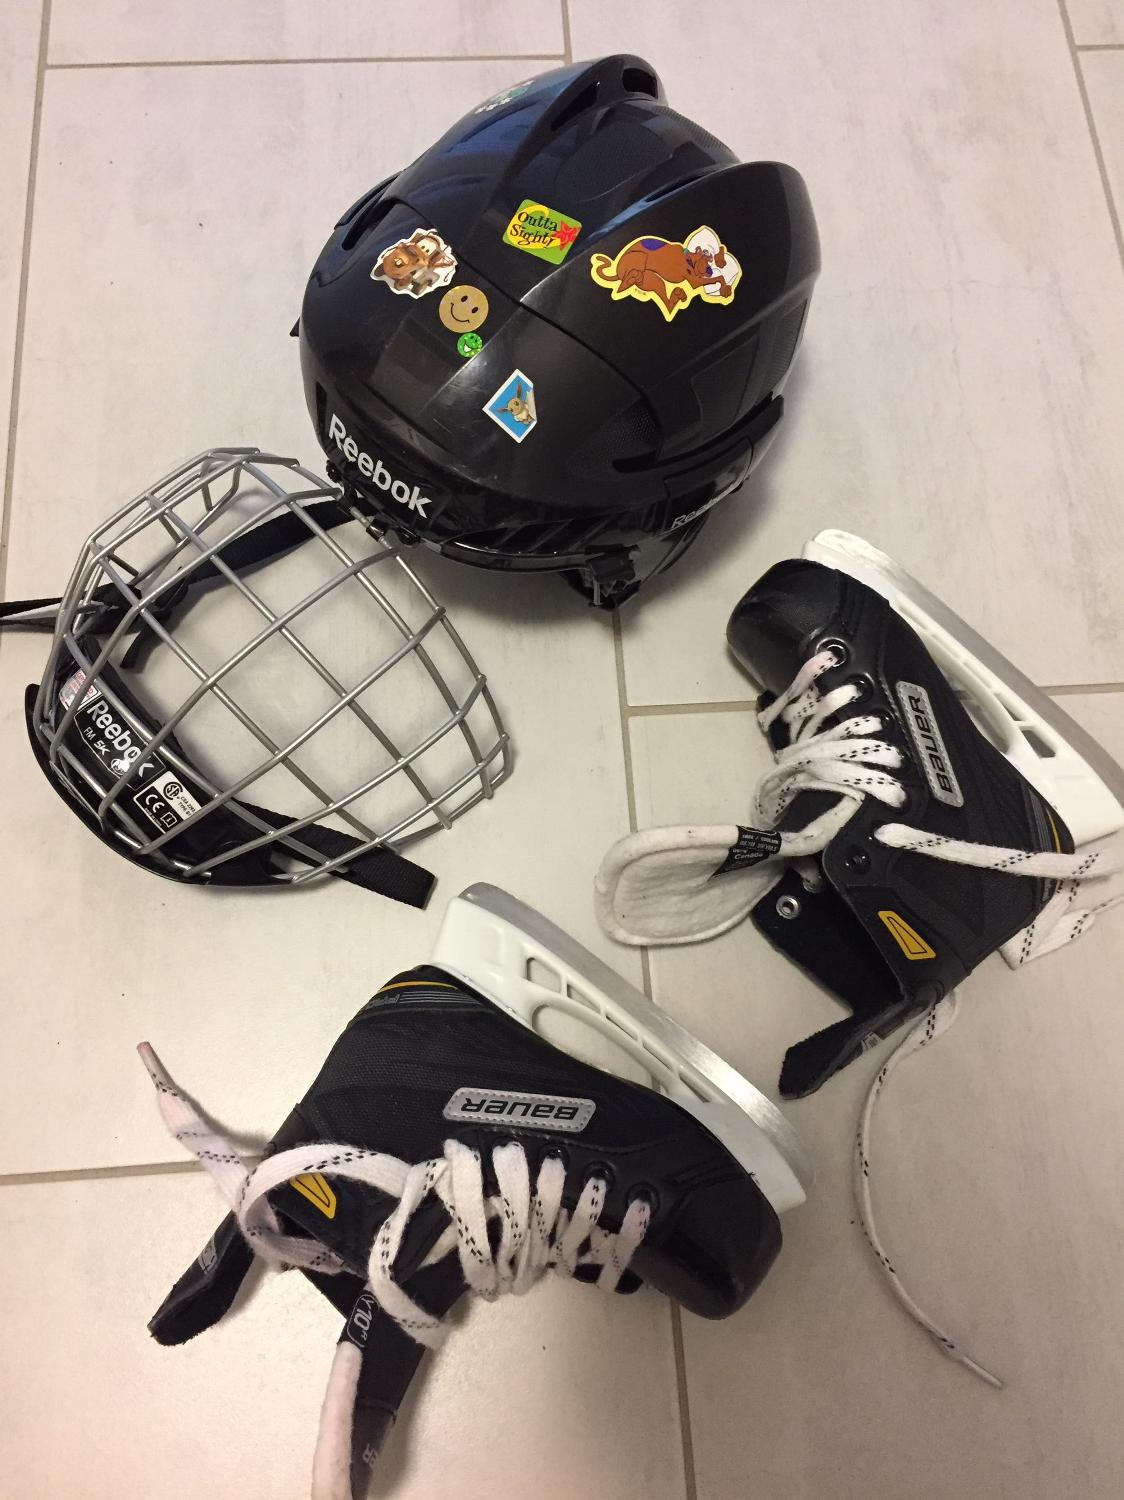 Best Kids Hockey Skates And Helmet - Size 11 for sale in ...